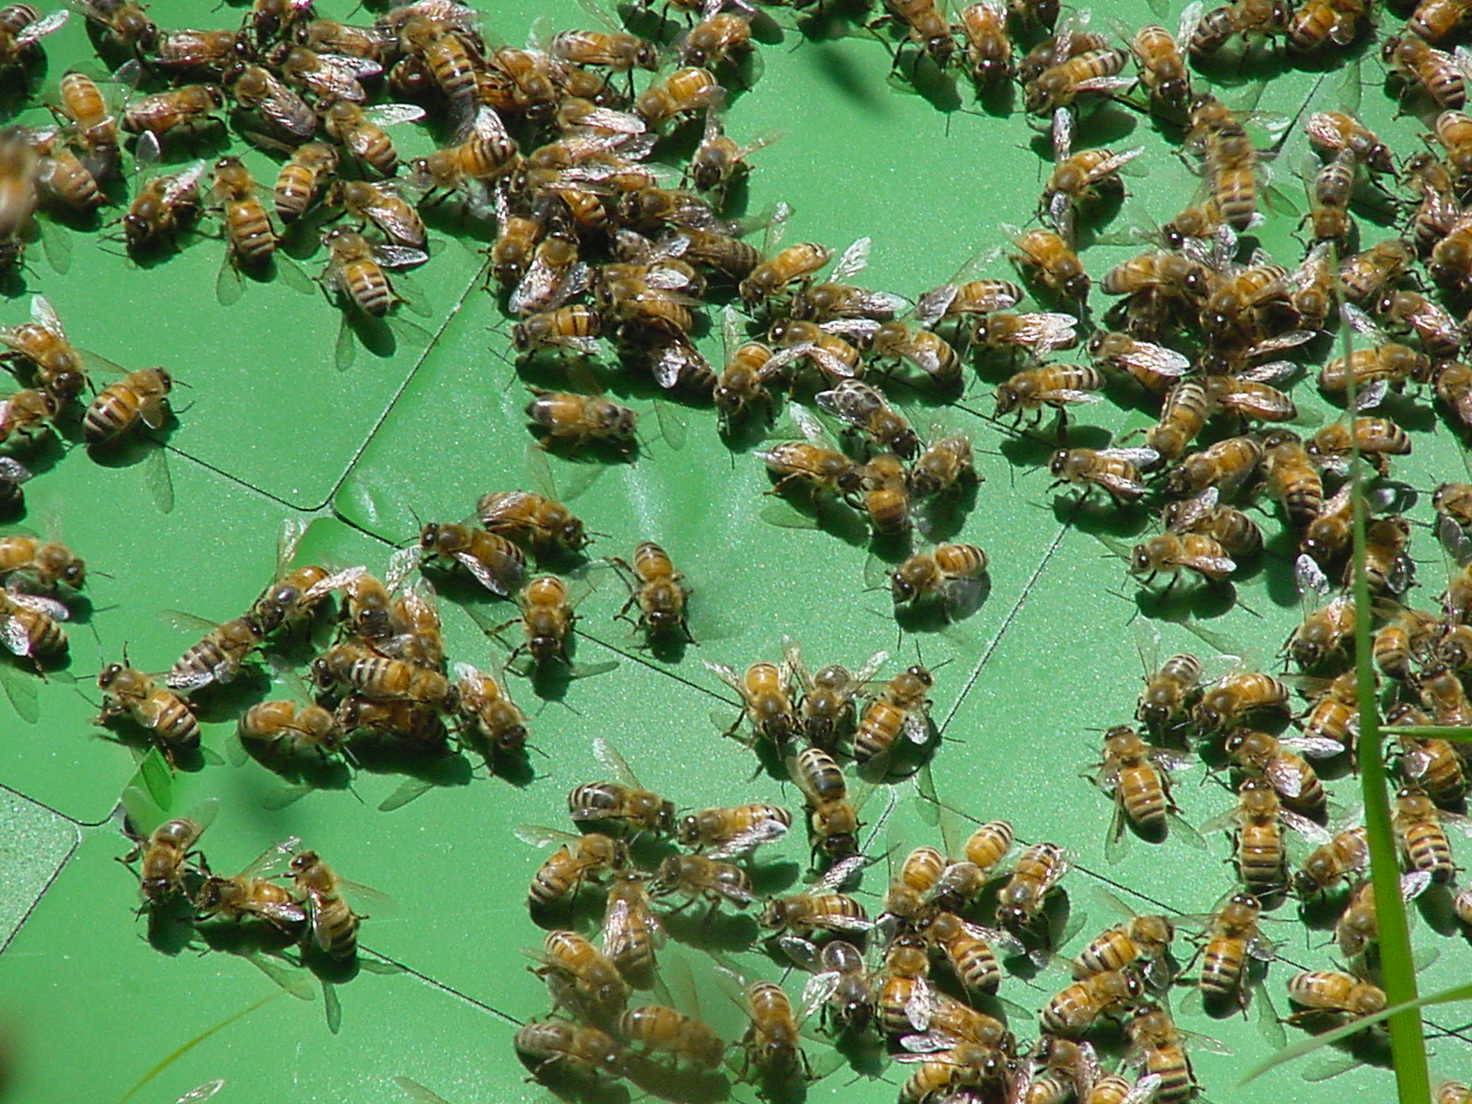 catching_a_swarm_of_bees_sj_28769474296229